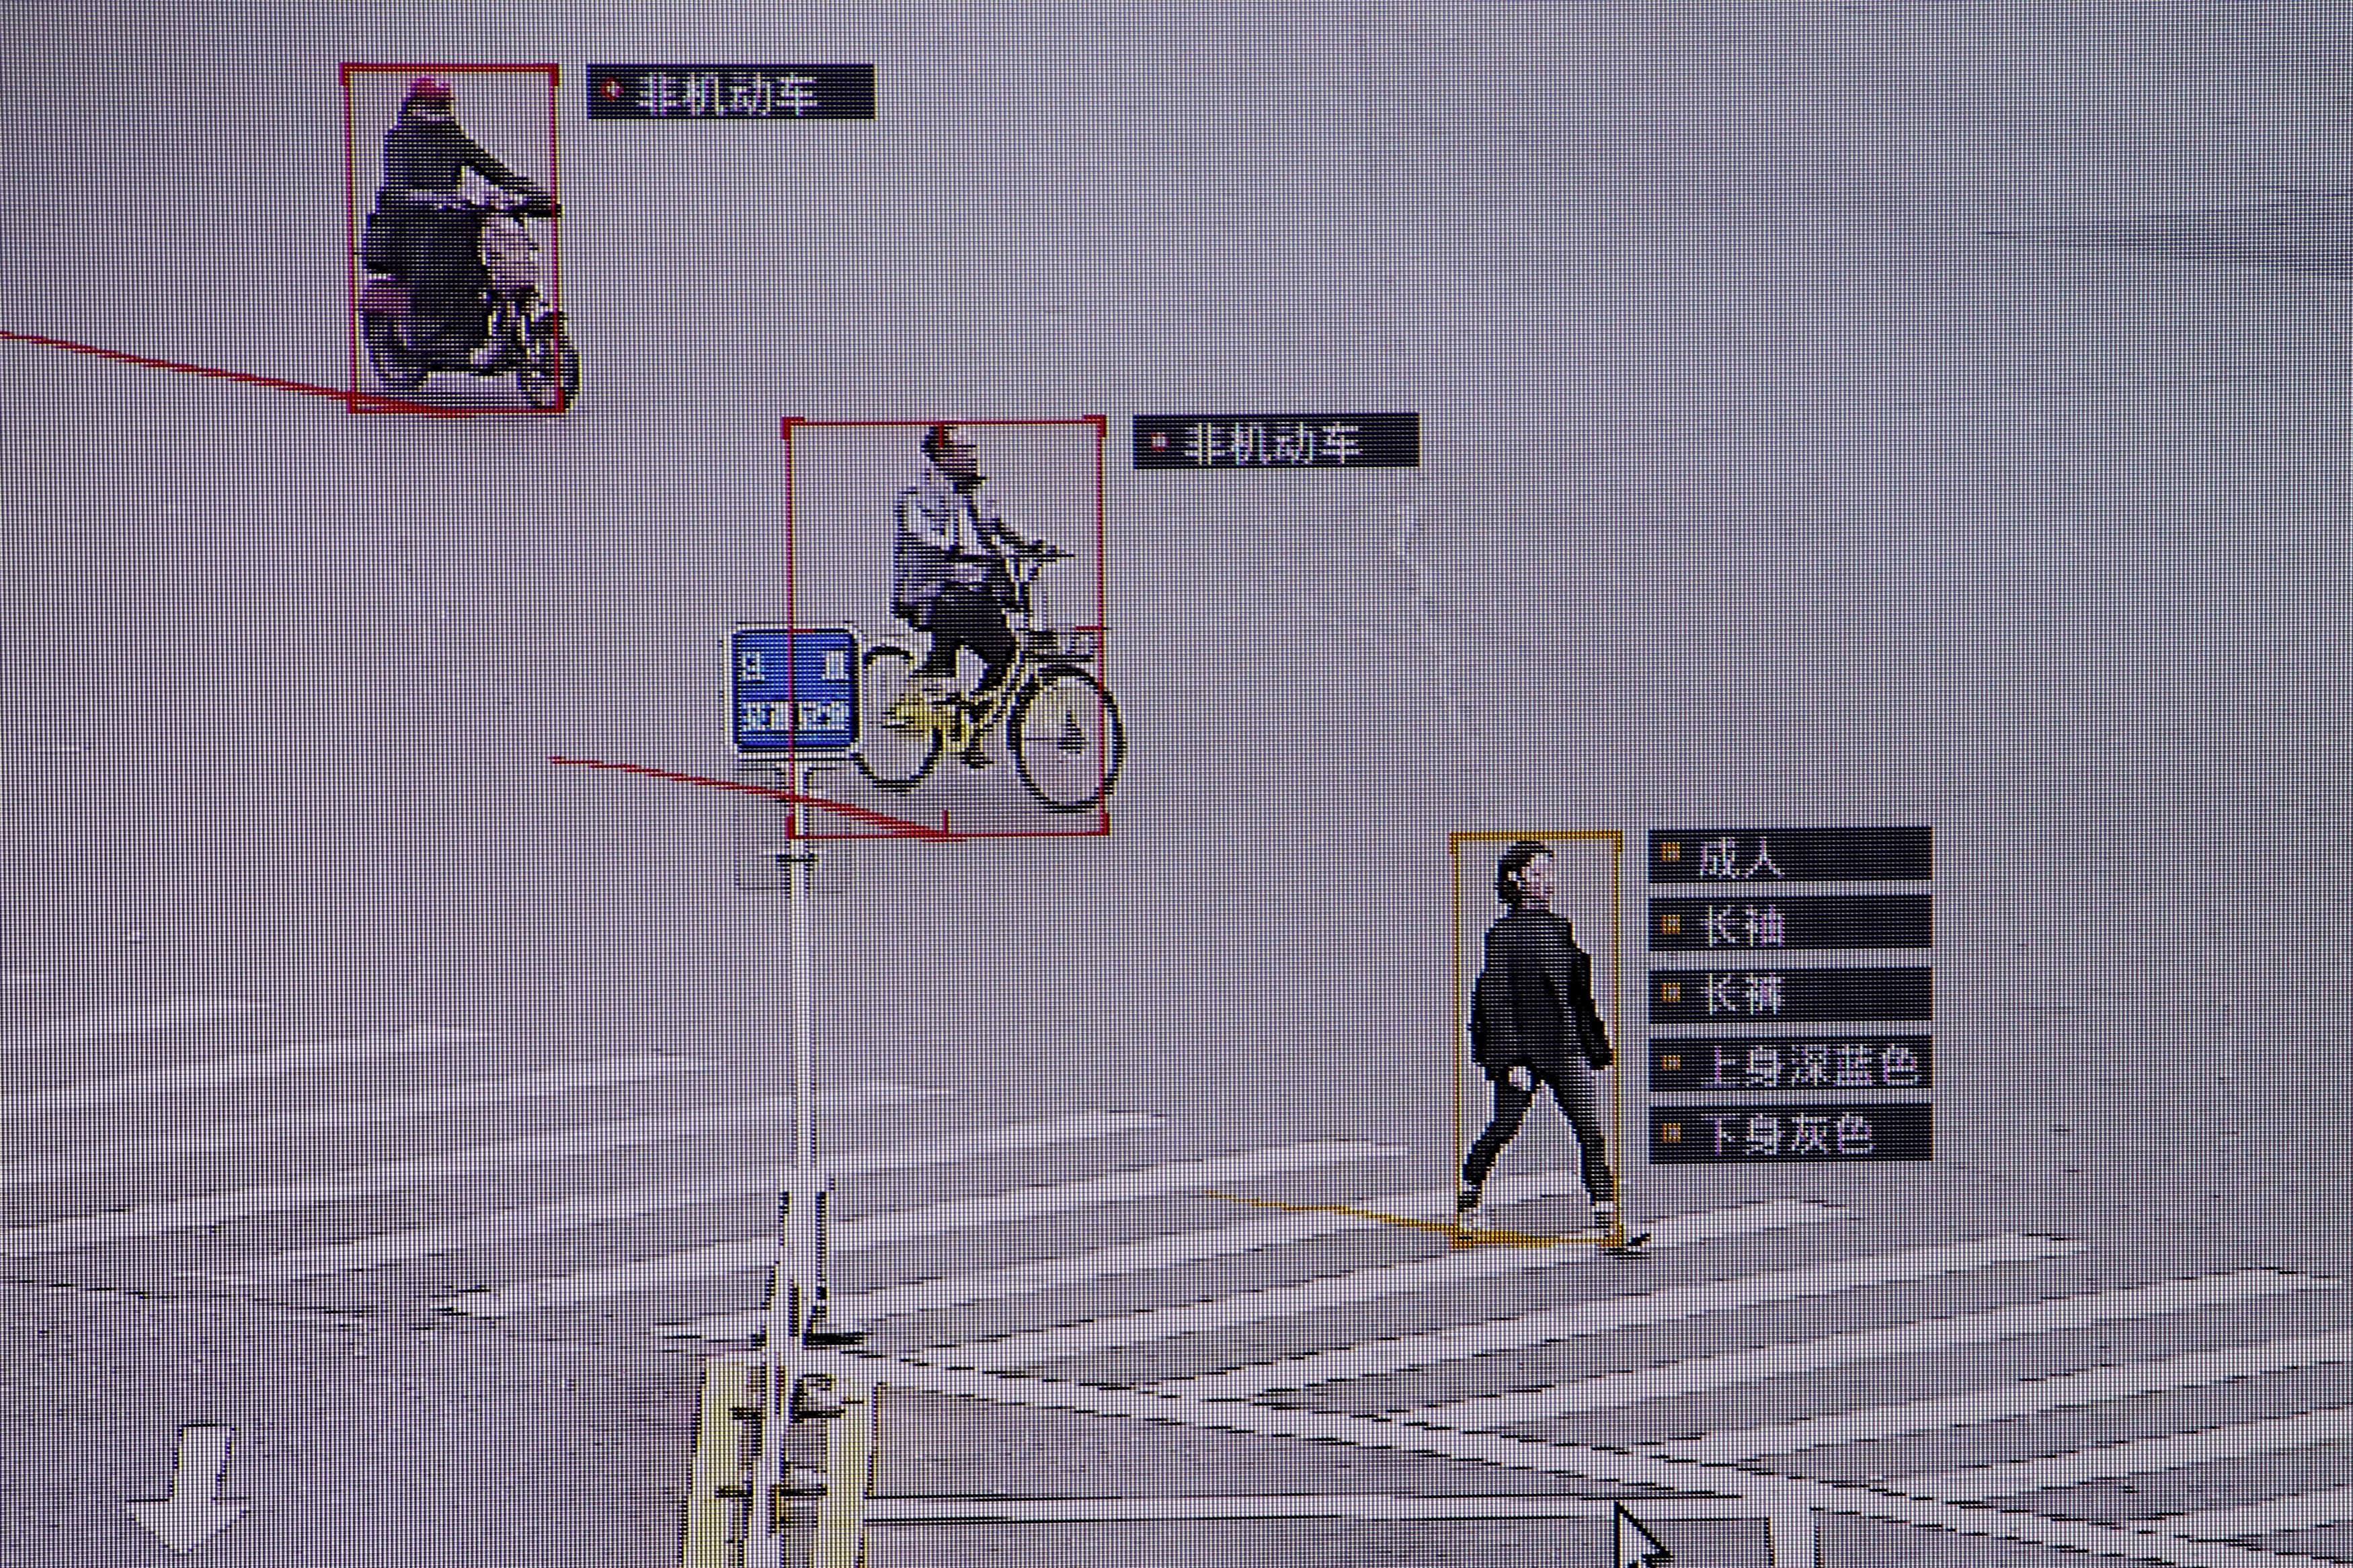 SenseTime surveillance software identifying details about people and vehicles runs as a demonstration at the company's office in Beijing, China, October 11, 2017.    Thomas Peter